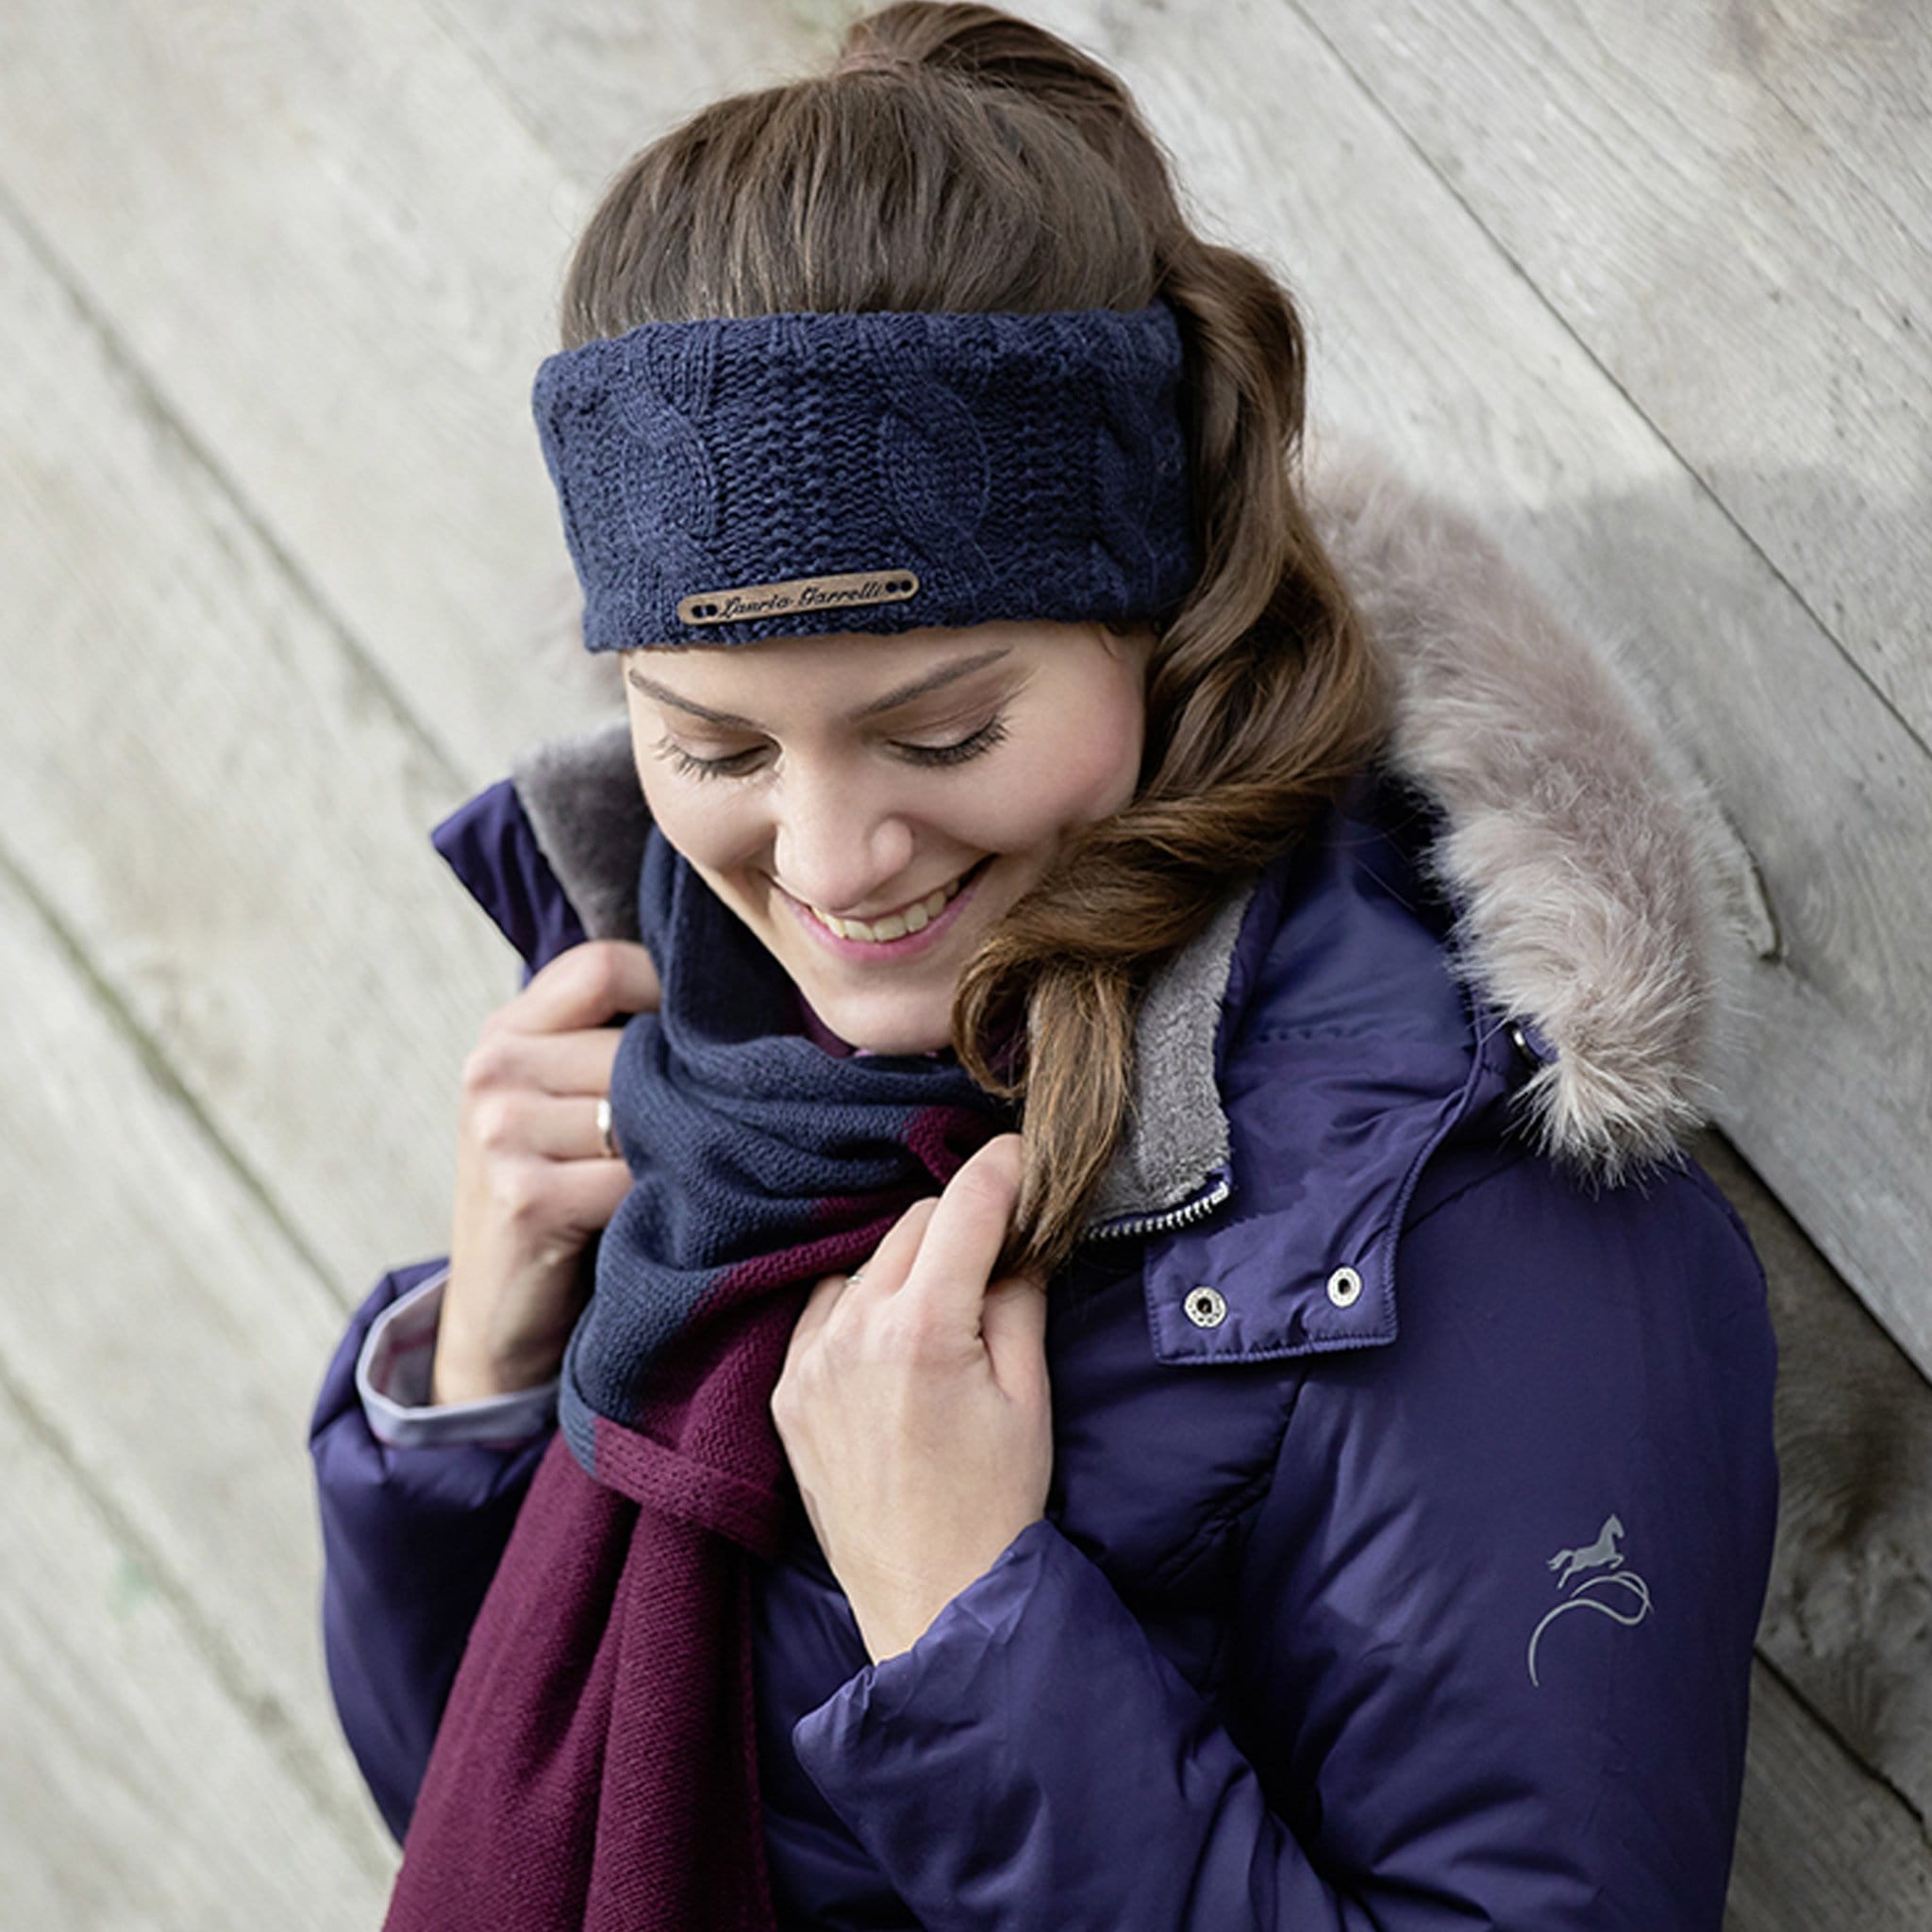 HKM Lauria Garrelli Morello Headband 12210 Indigo Blue On Model